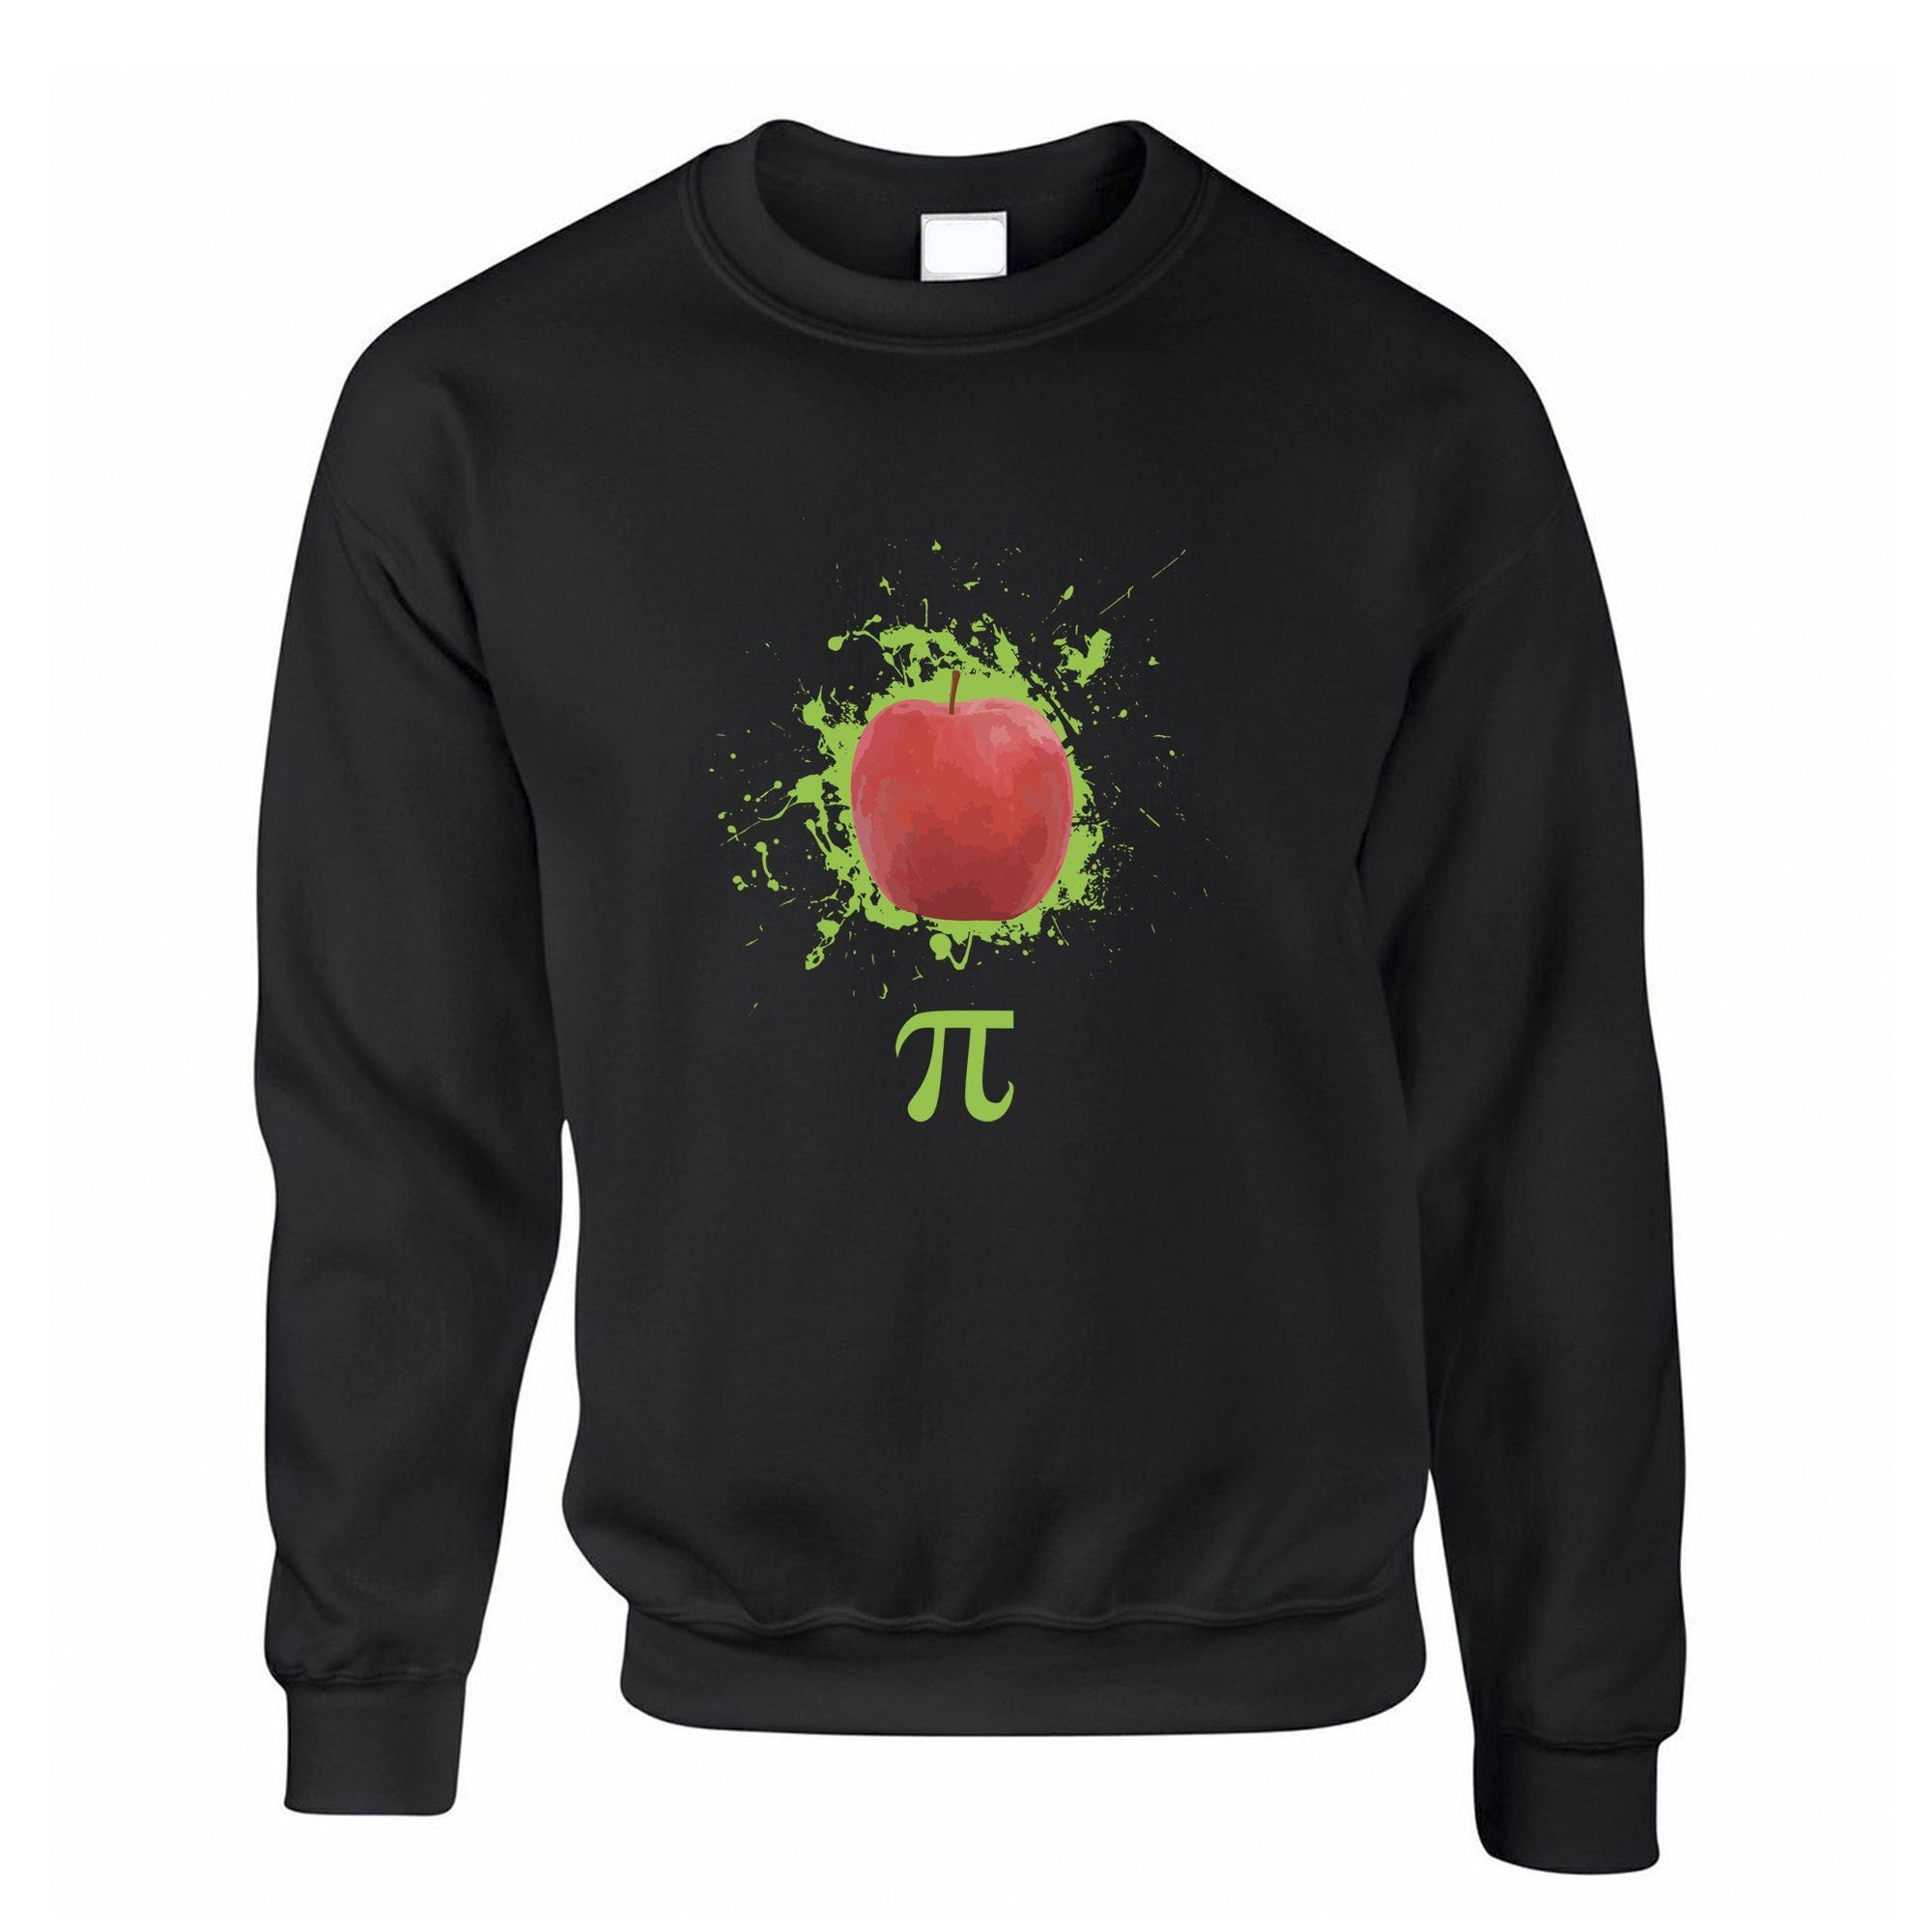 Novelty Jumper Apple Pie Pi Math Pun Joke Sweatshirt Sweater